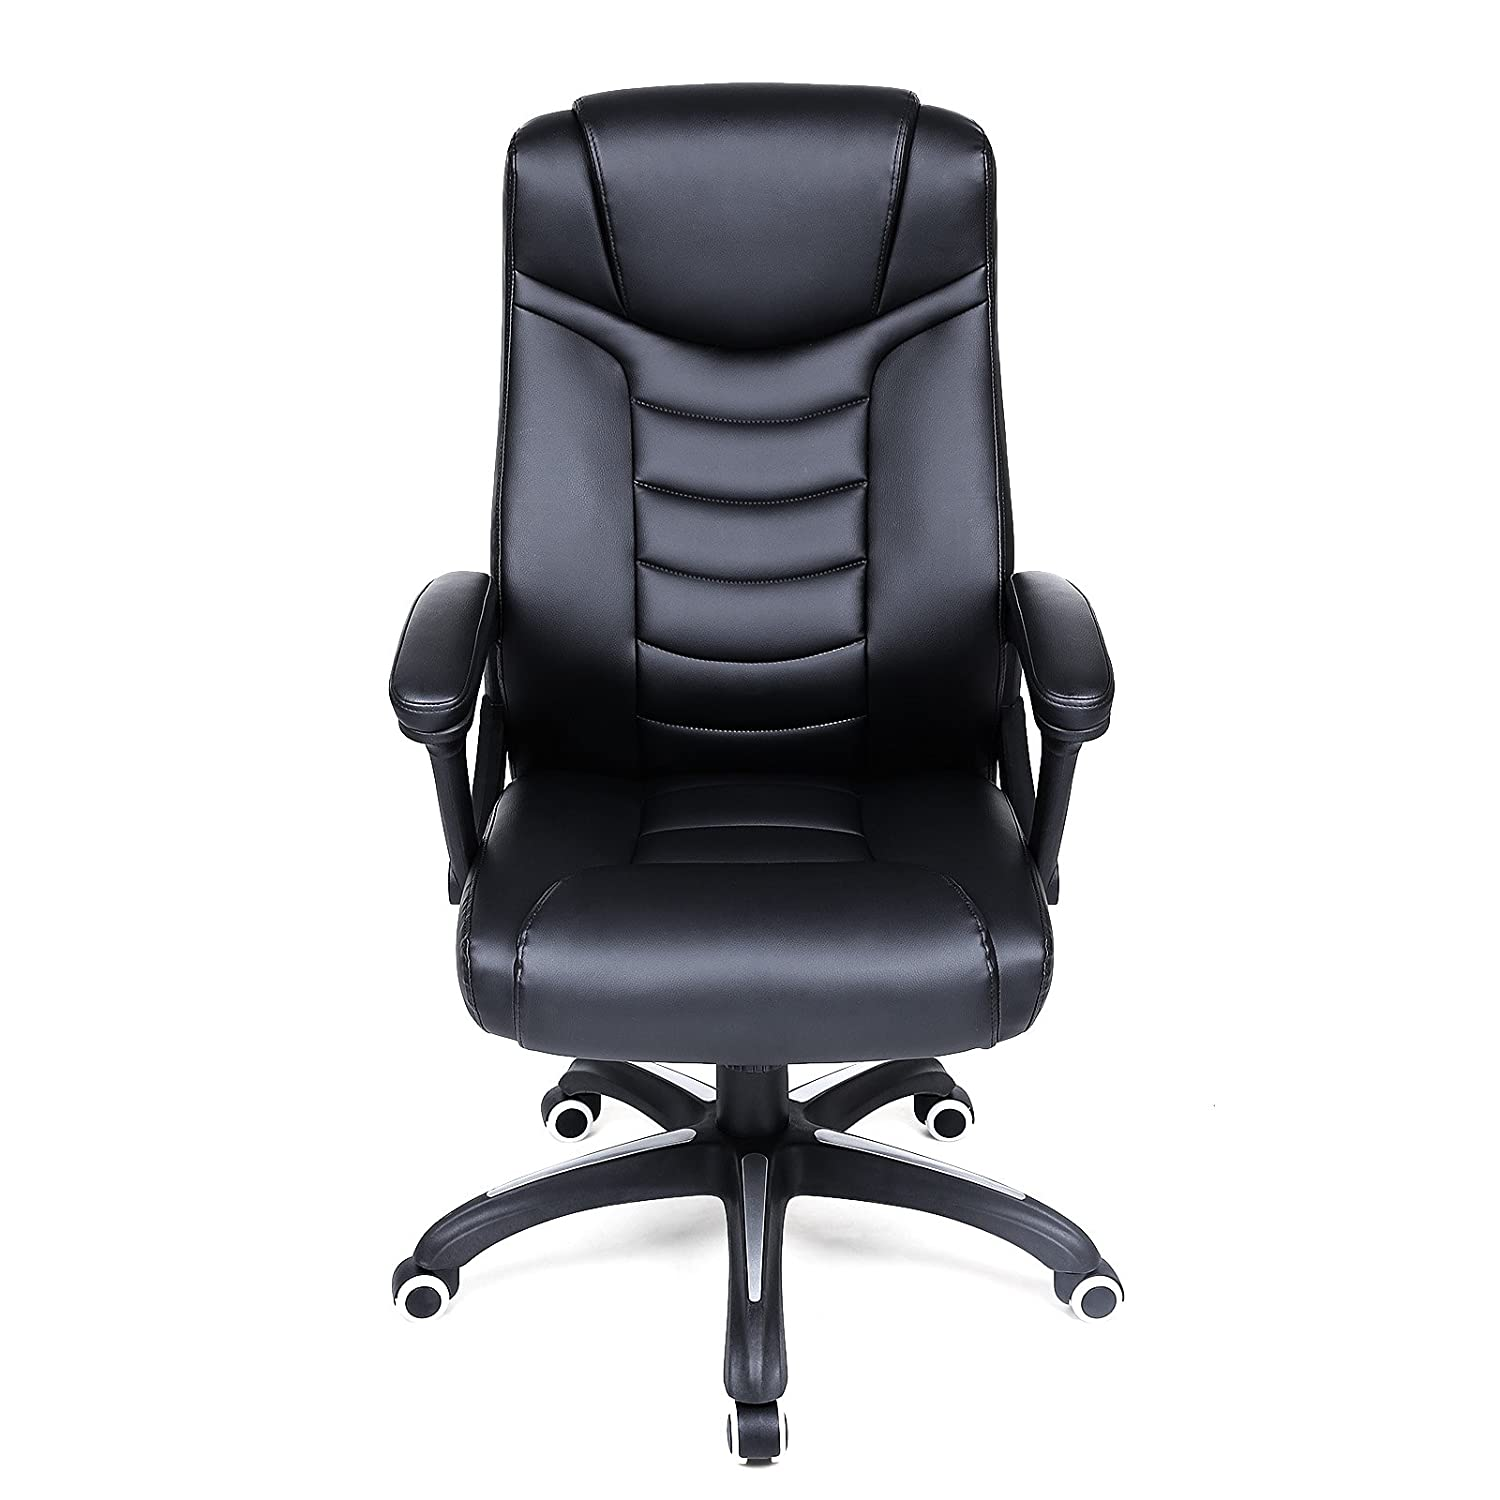 Songmics fice Chair with High Back and Tilt Function Executive